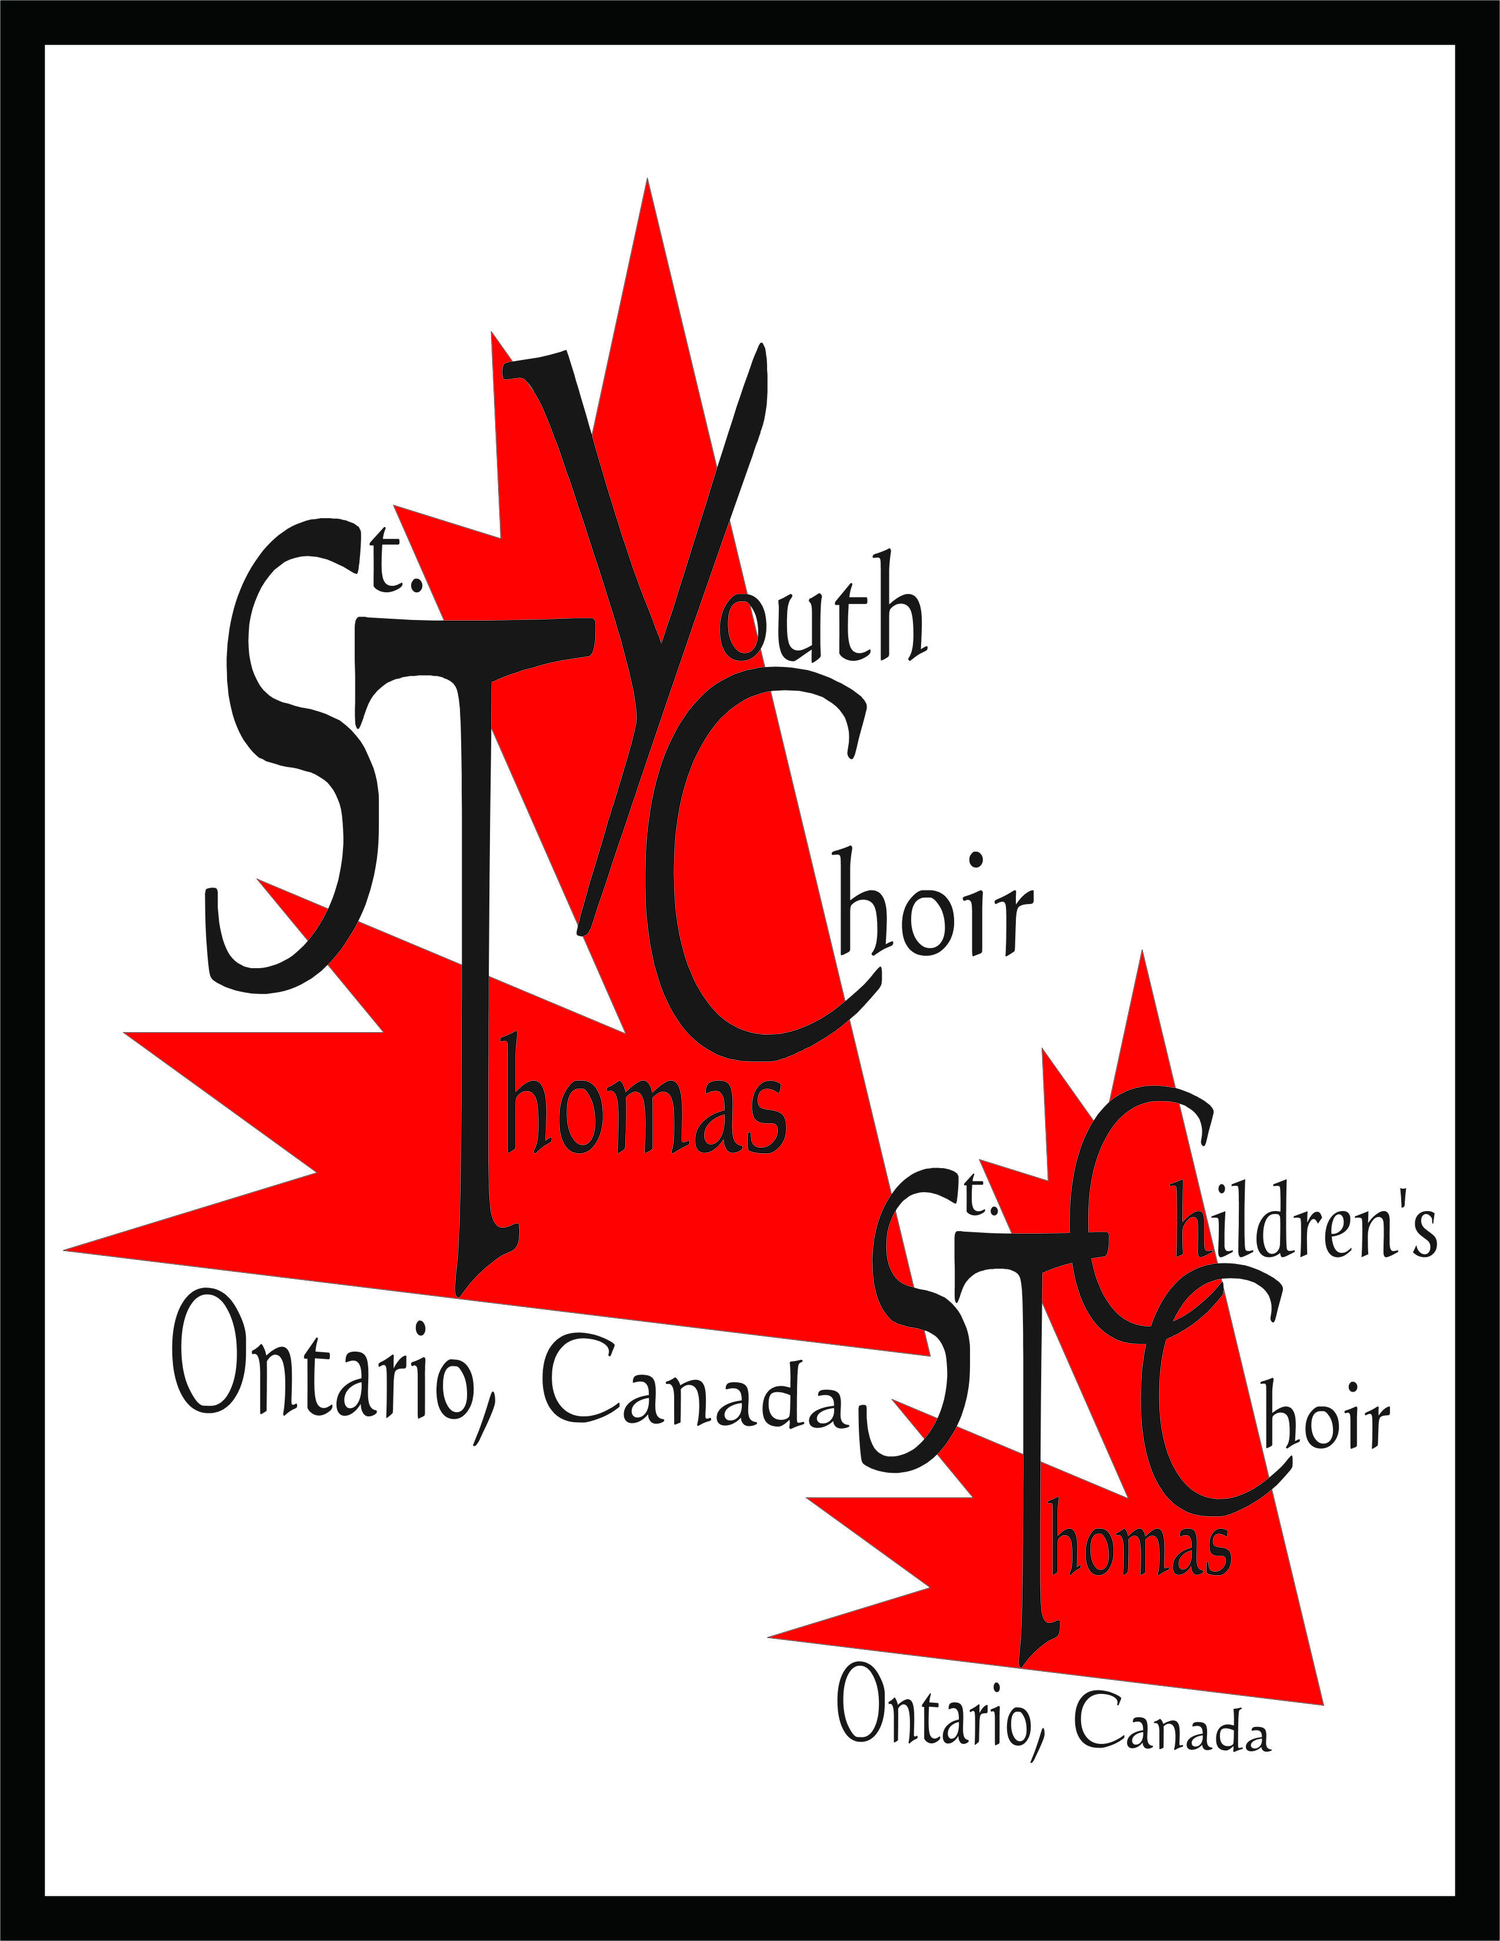 St Thomas Youth & Children's Choirs